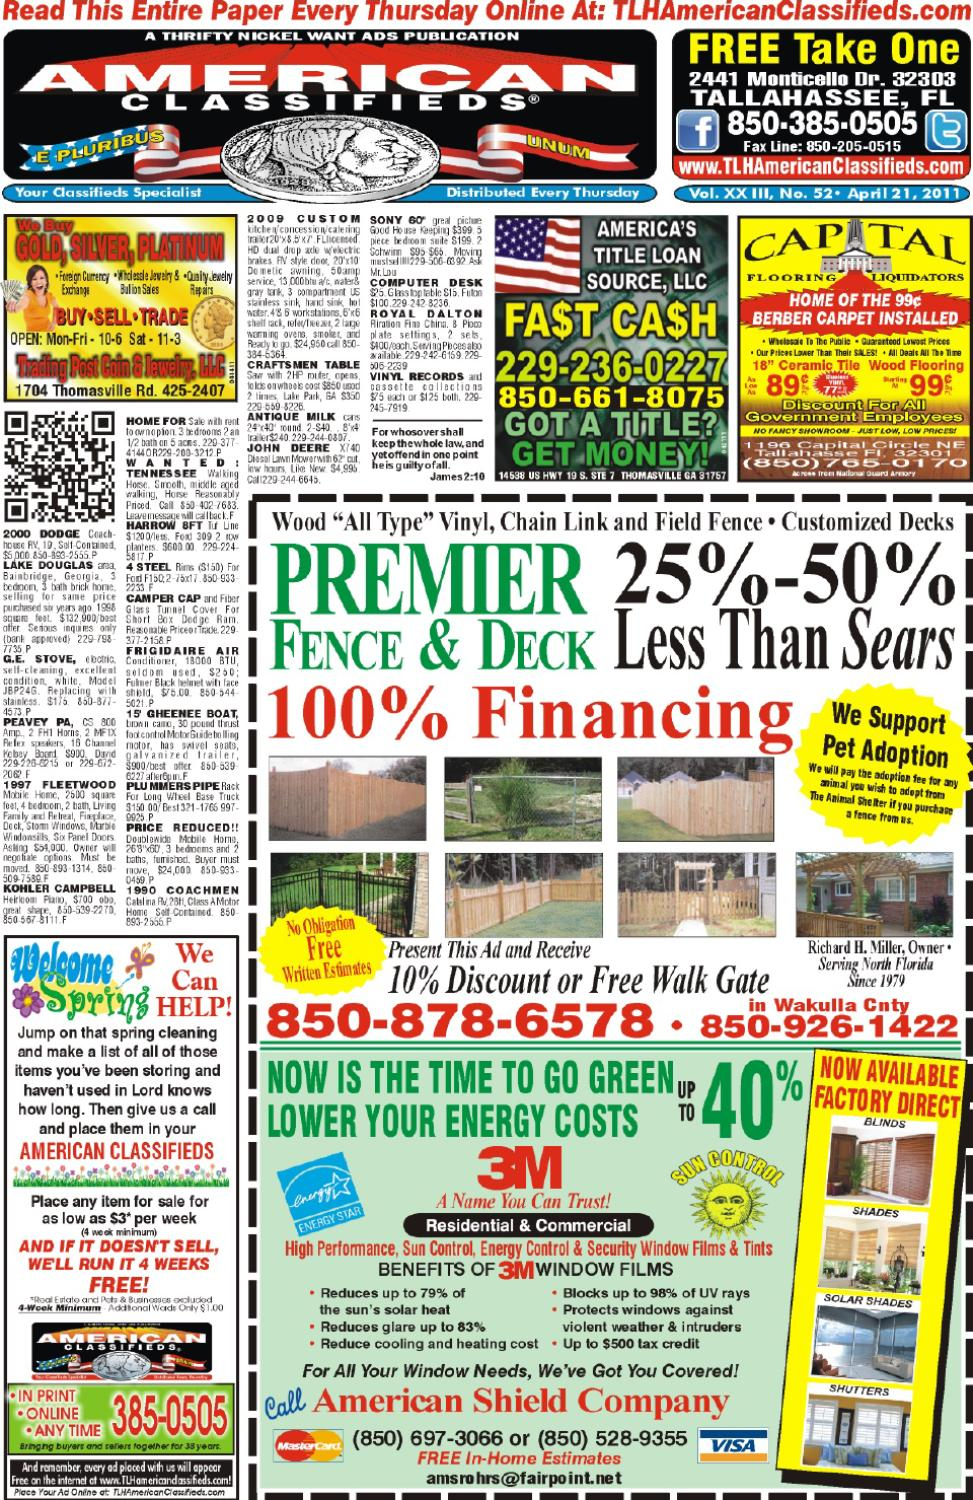 Tallahassee american classifieds issue 04 21 11 by - Craigslist tallahassee farm and garden ...